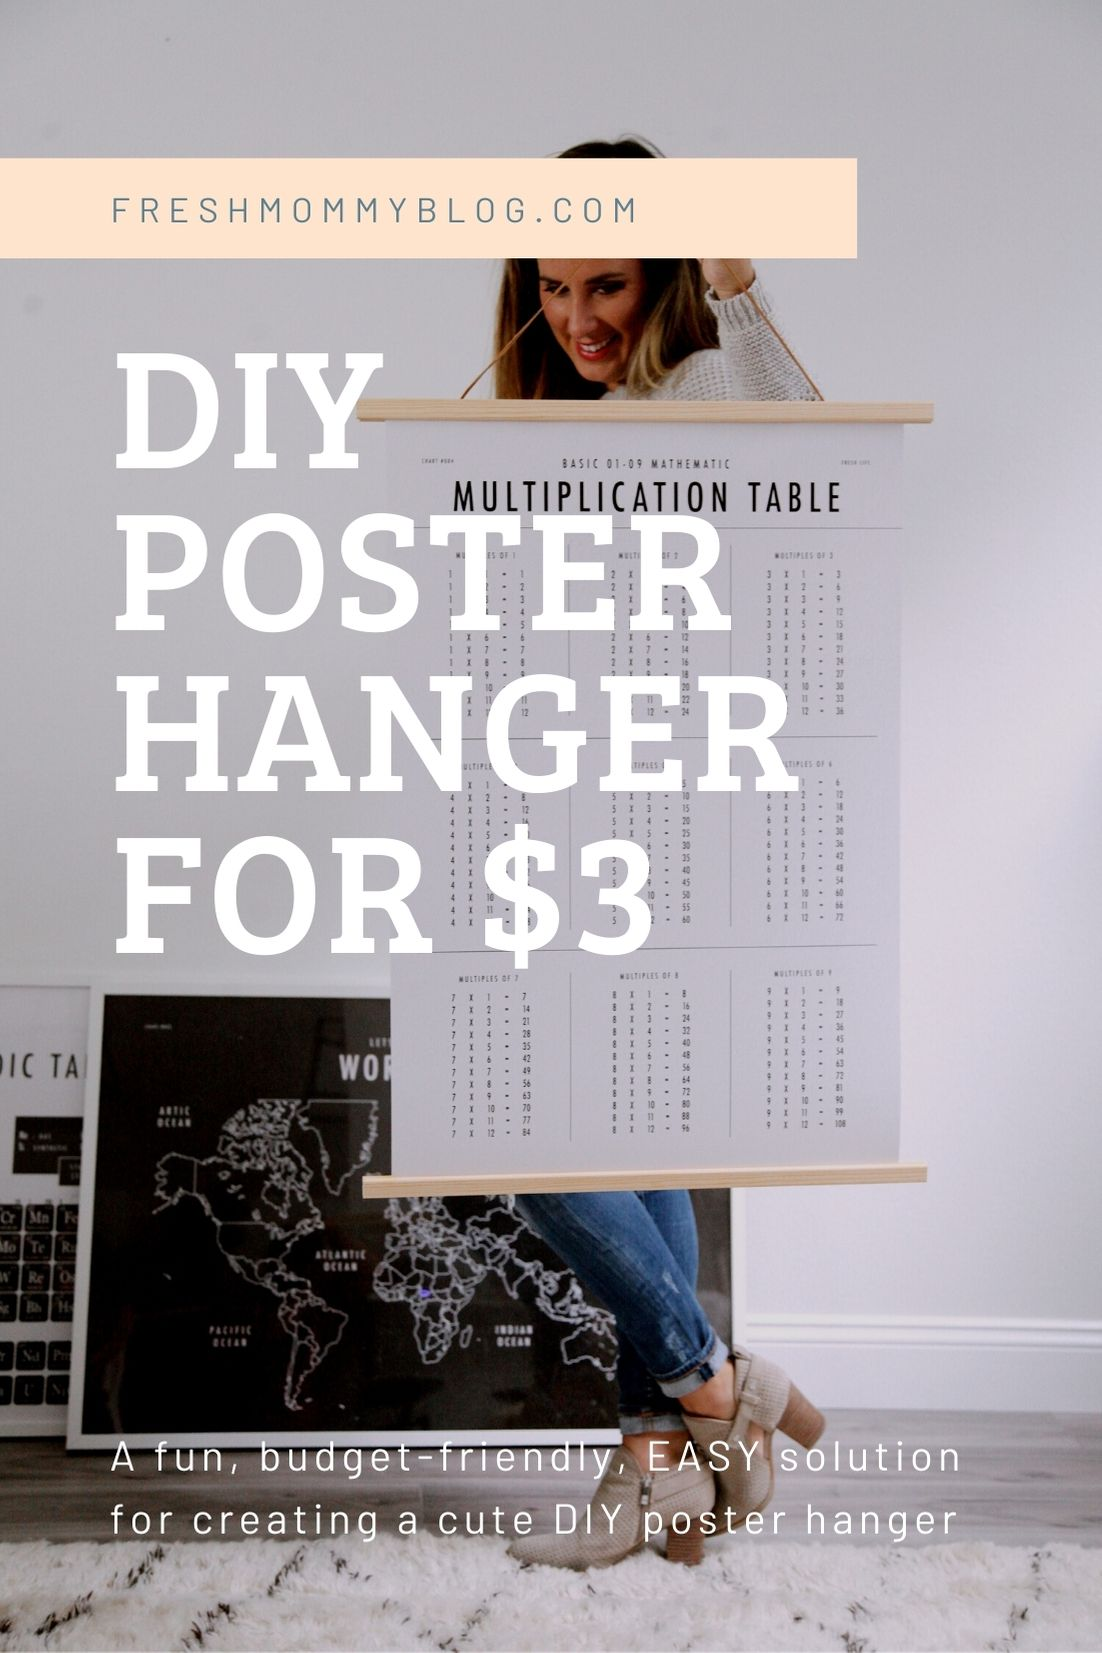 Click through for a fun, EASY DIY poster hanger tutorial. You can make your own  DIY poster hanger for $3 in just a few short minutes! | DIY Poster Hanger by popular Florida DIY blog, Fresh Mommy Blog: Pinterest image of Tabitha Blue holding a DIY poster hanger.